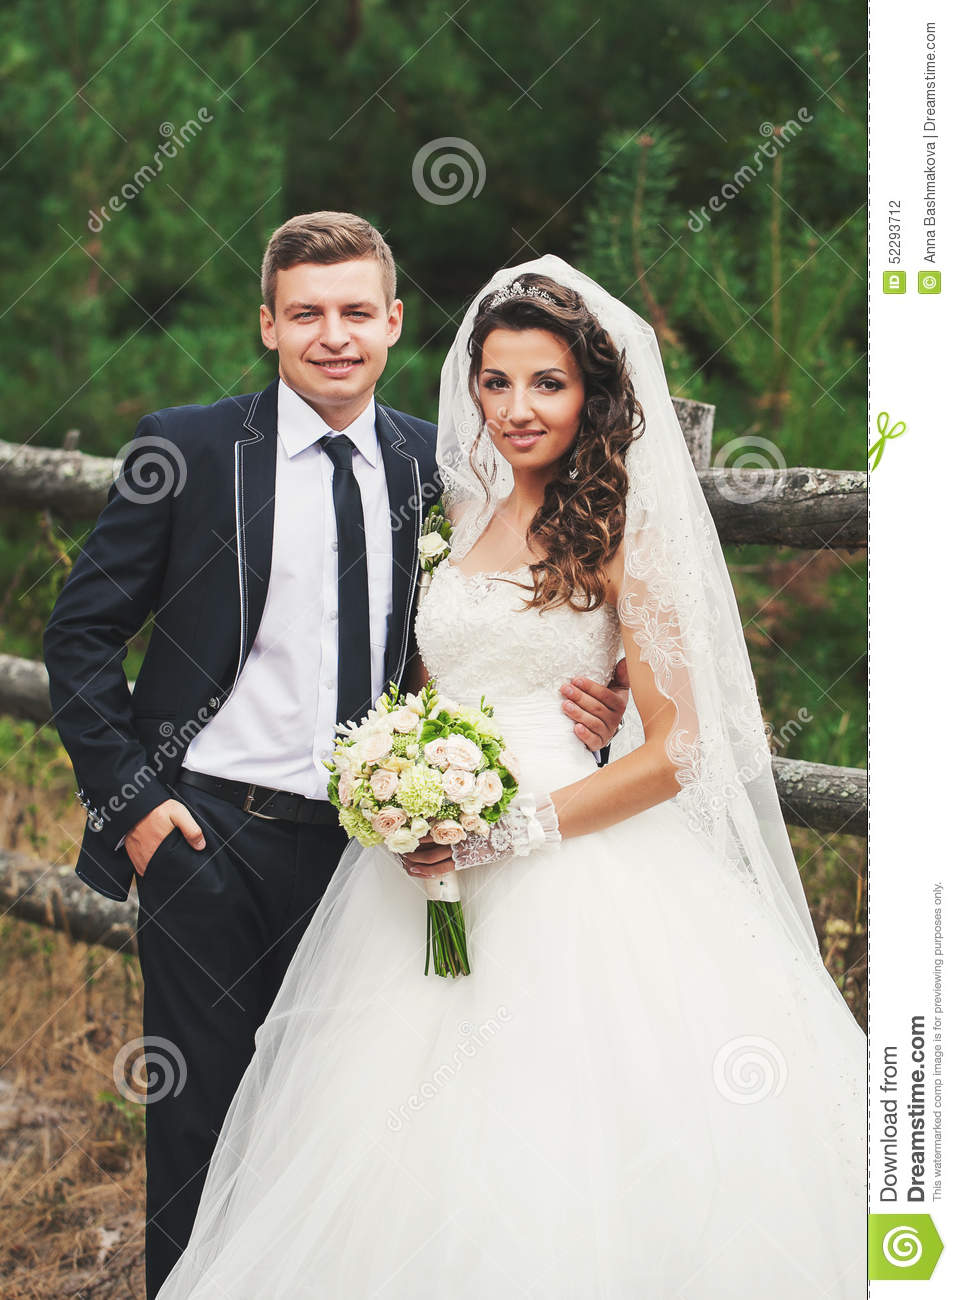 Matching Bride and Groom Dress